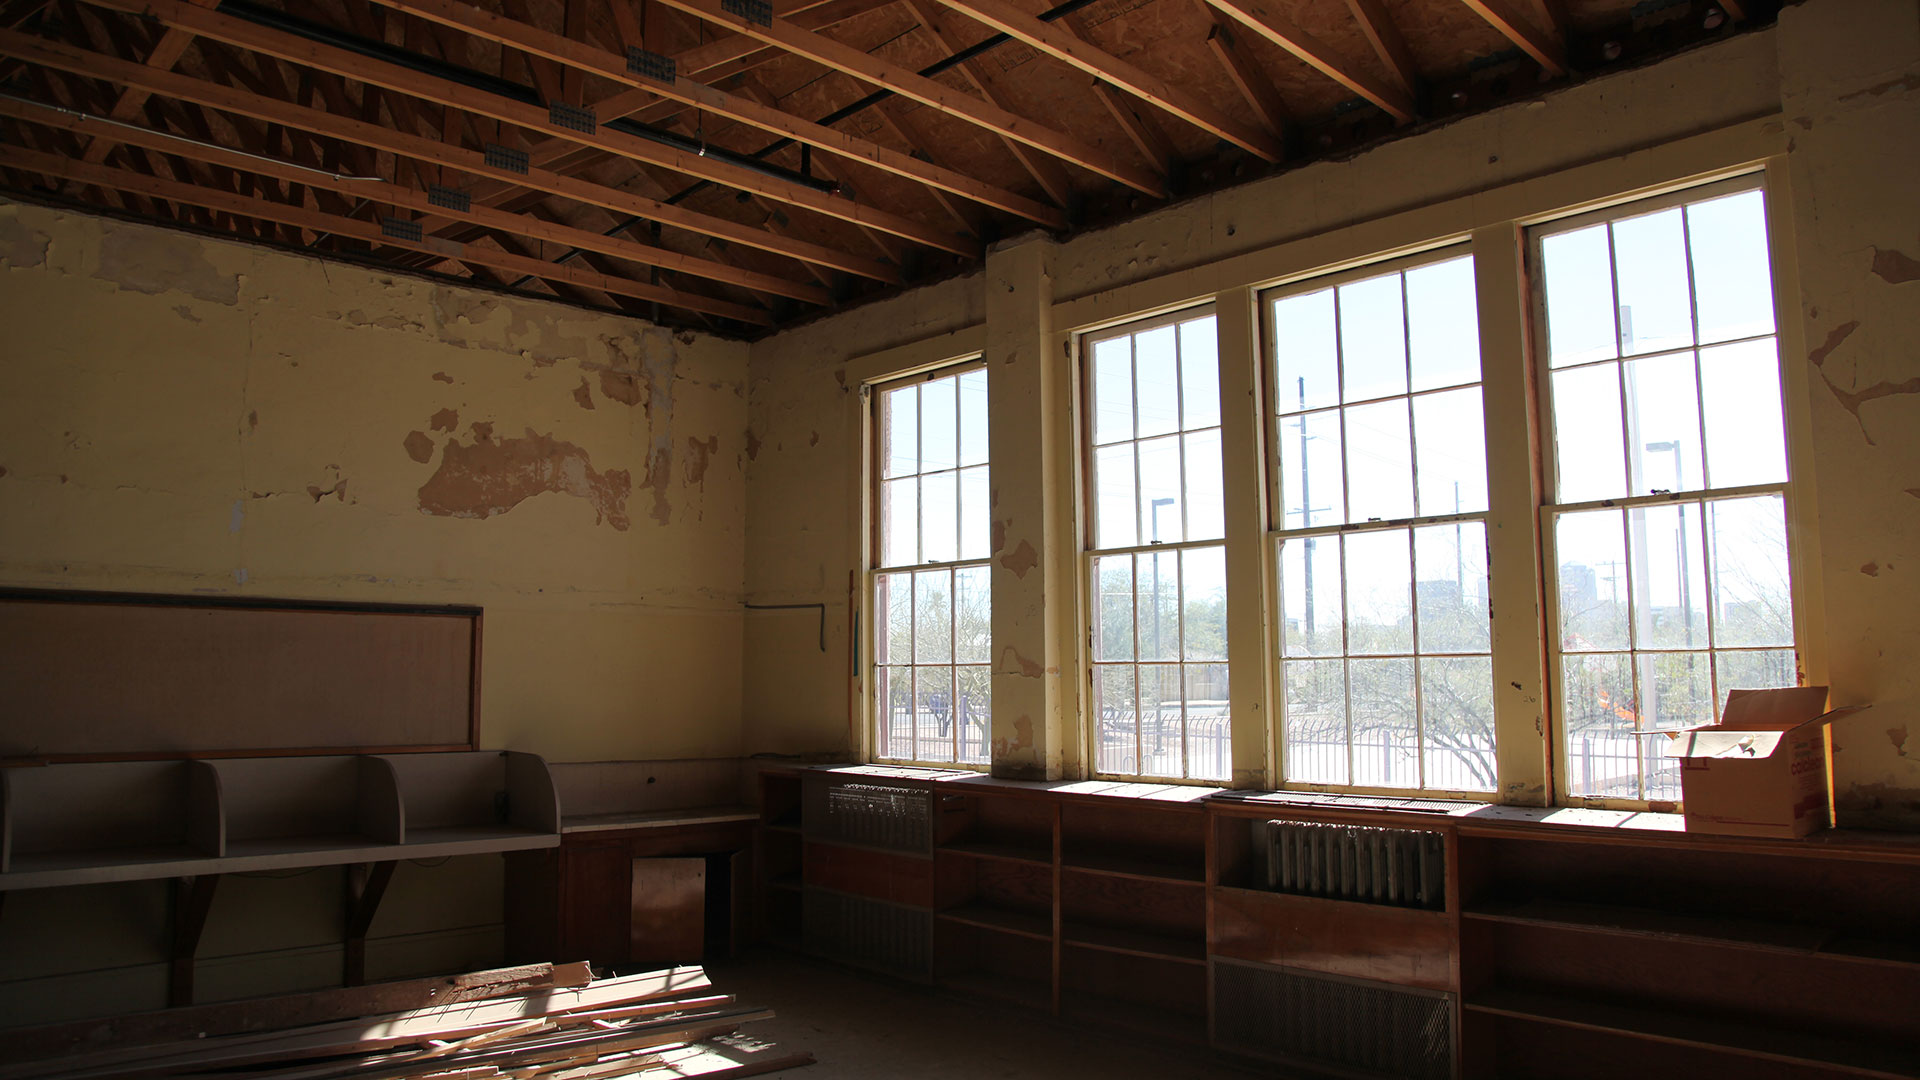 The rooms at Dunbar Pavilion are in different stages of repair.